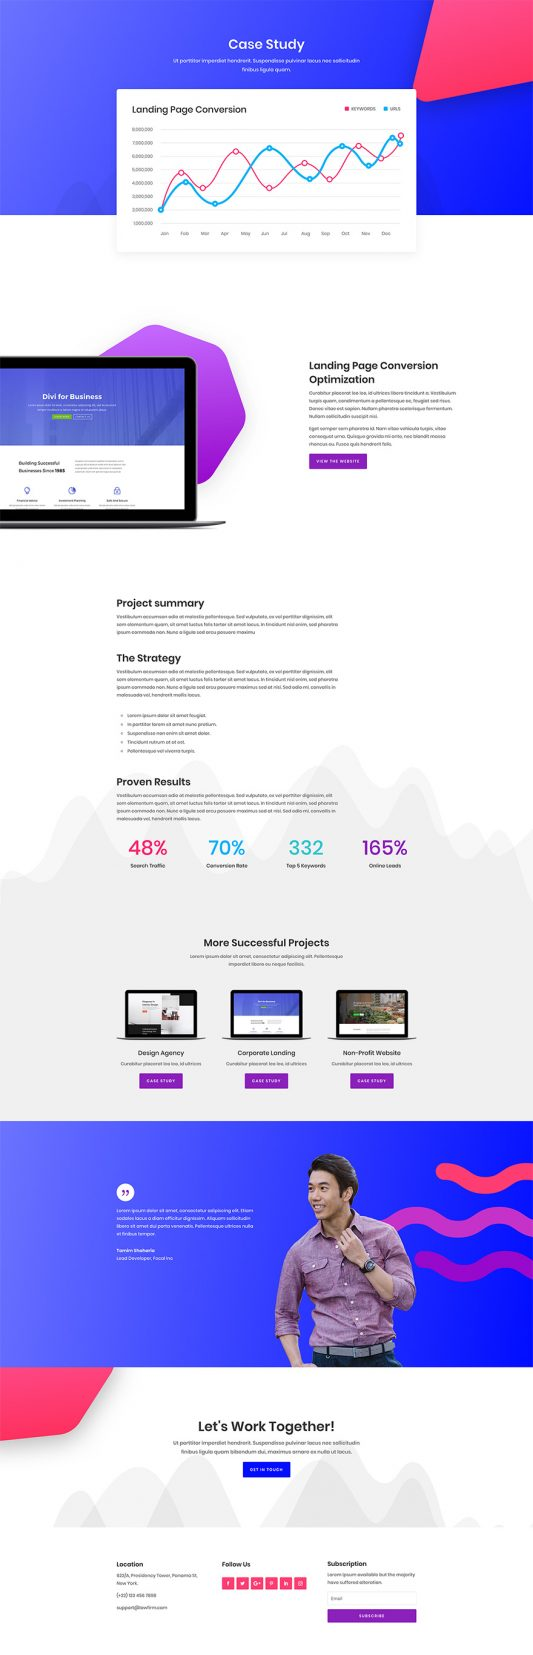 SEO Agency Web Design 3